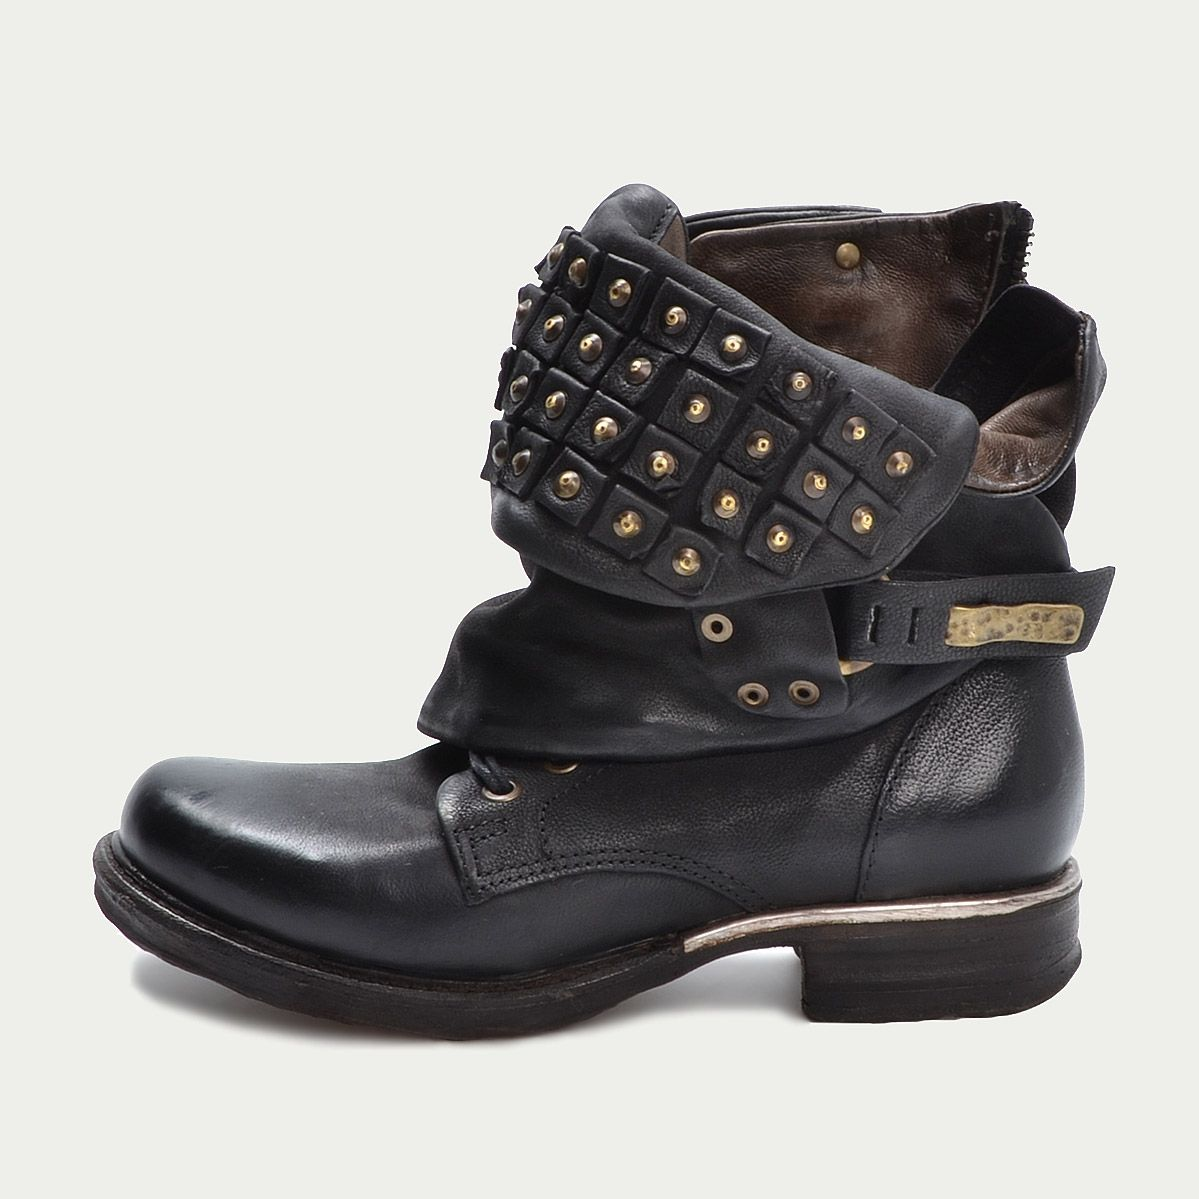 Airstep A.S.98 FORETTE Damen Stiefelletten Boots